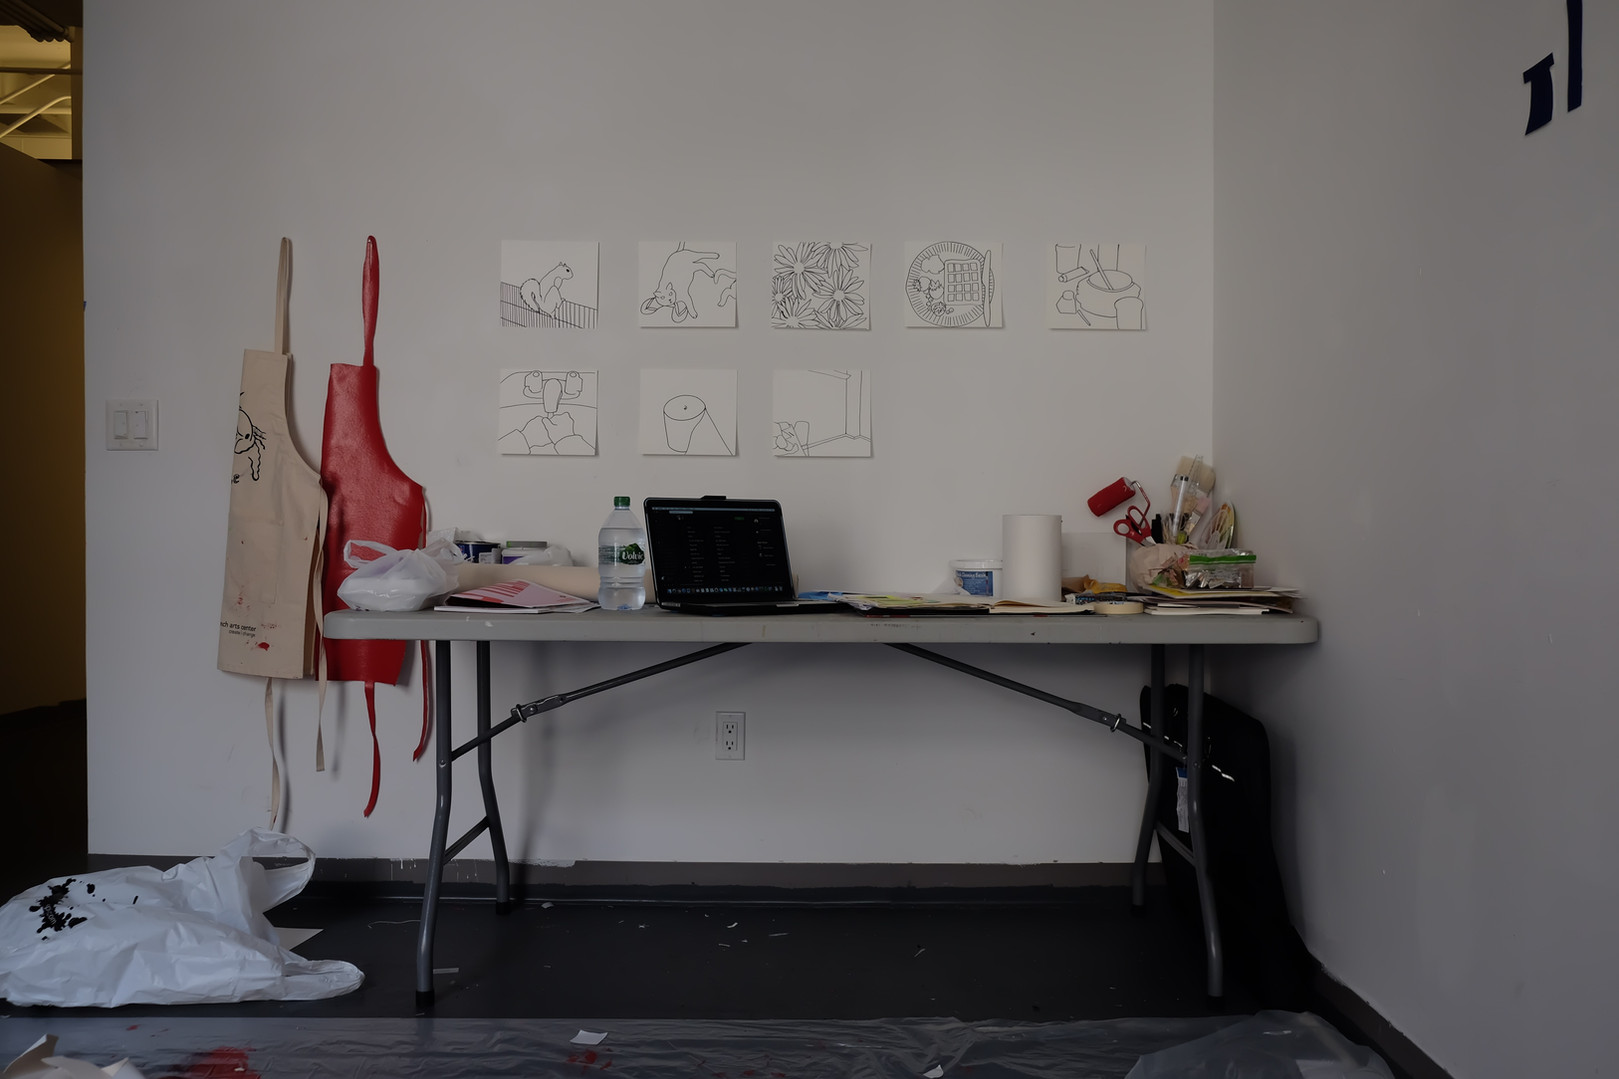 Work Desk at Temporary Working Space